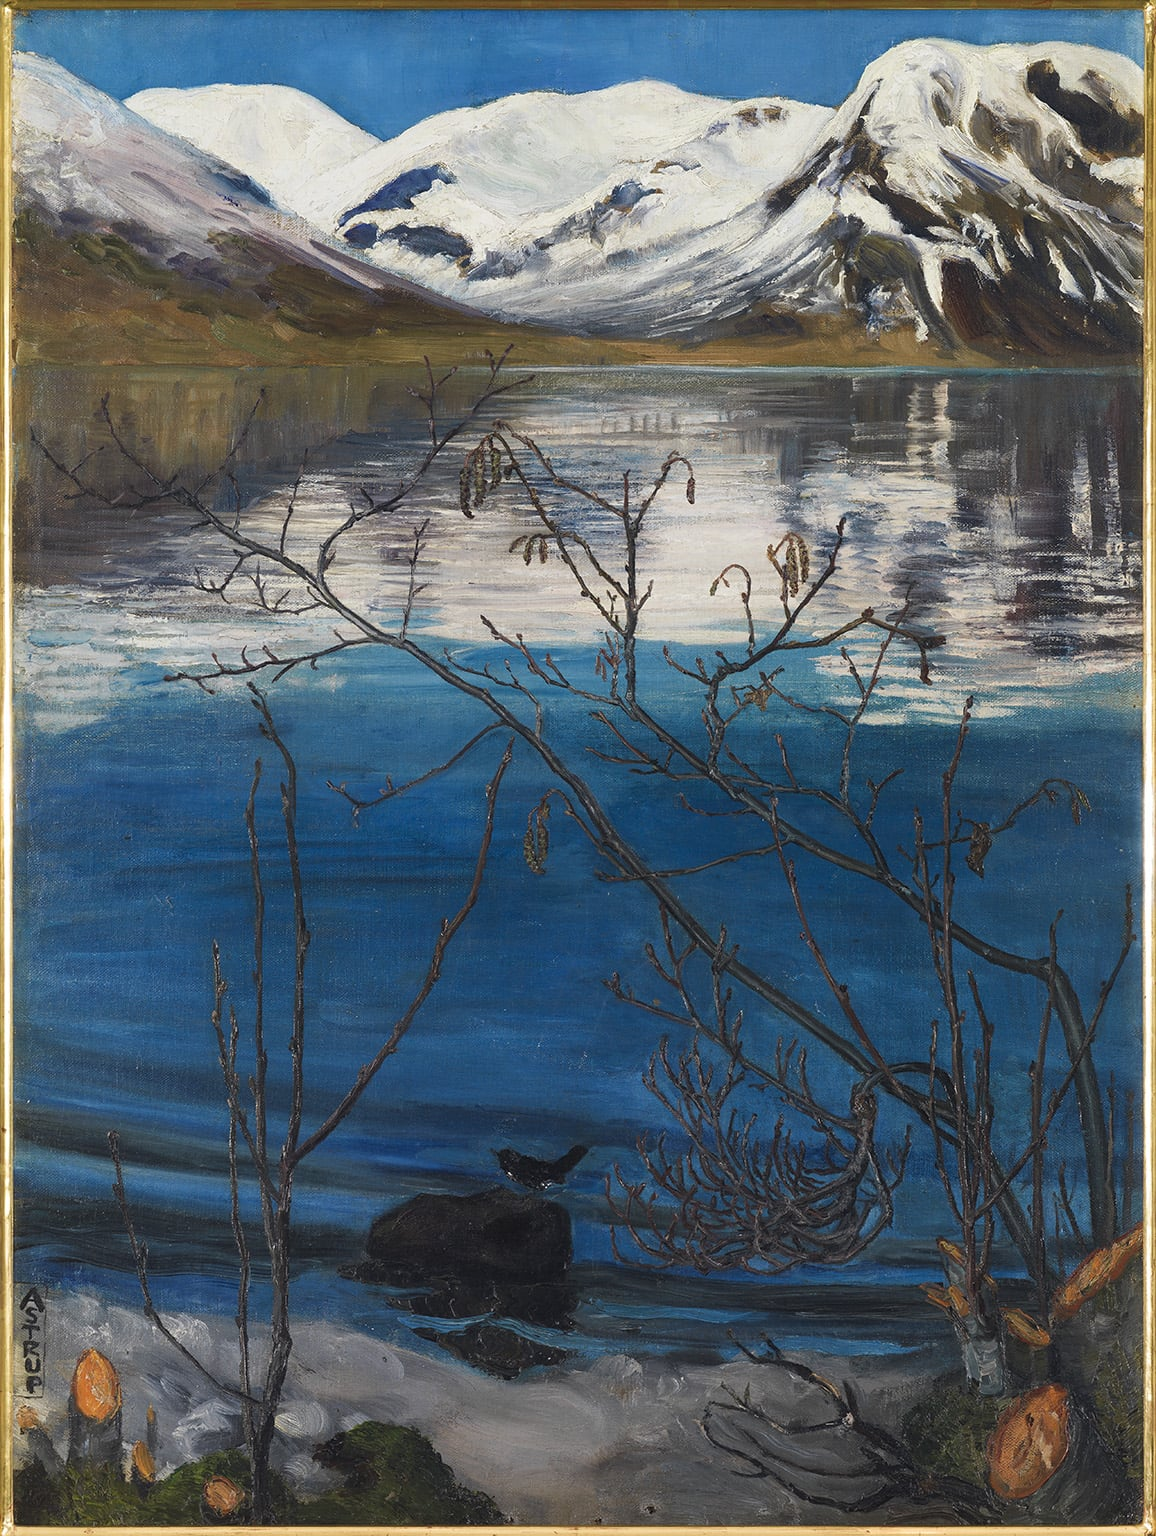 Nikolai Astrup, March Atmosphere at Jølstravatnet, before 1908 - Private collection, Oslo. Photo © Anders Bergersen